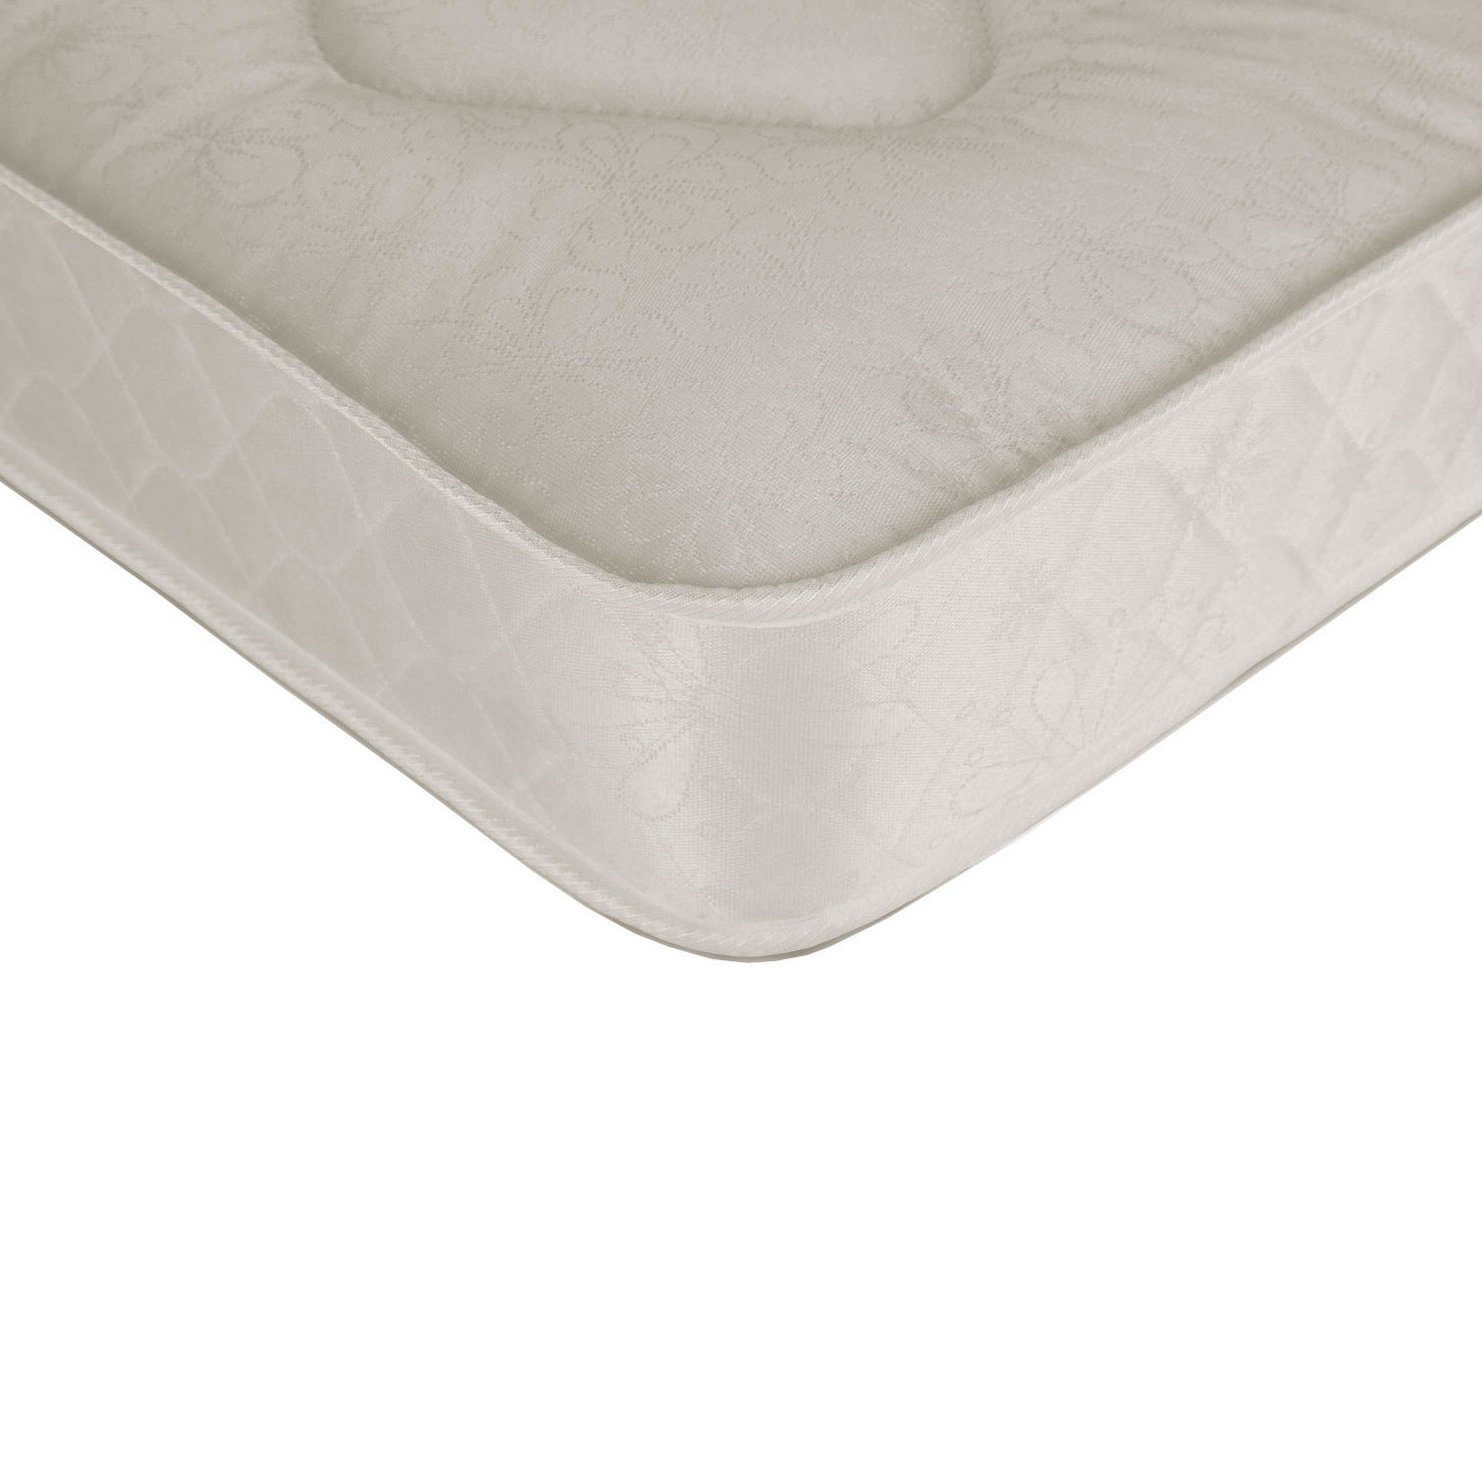 WorldStores Superior Comfort Ortho Supreme Mattress   5FT King Size Mattress   Coil Sprung Mattress   Luxury Belgian Damask Cover   Sumptuous, Supportive Fillings   Firm       Customer reviews and more information